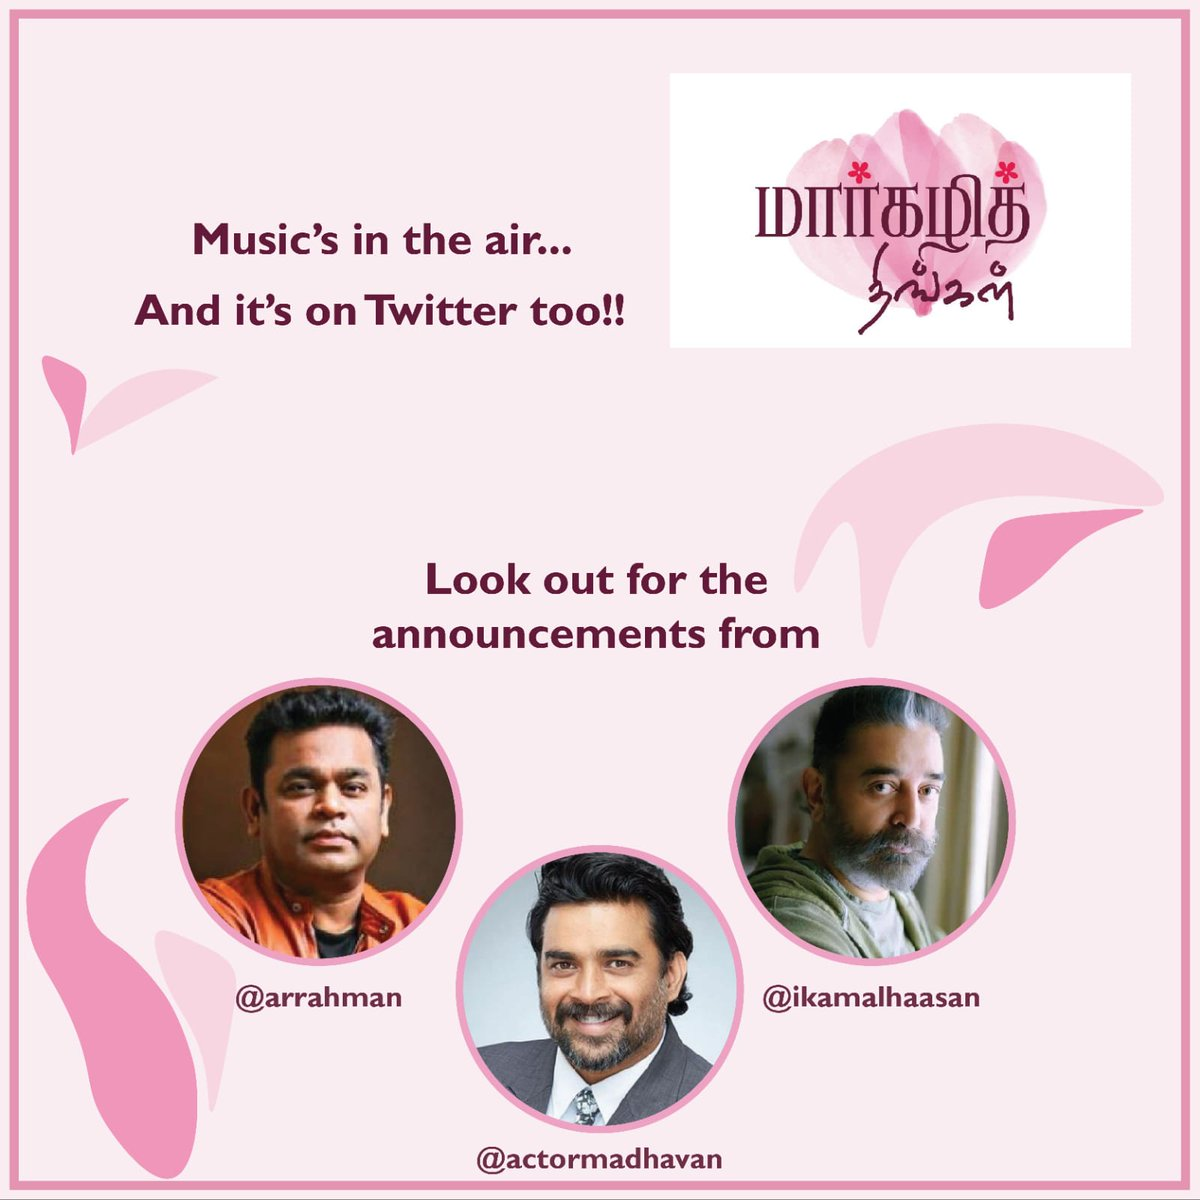 #OnePaasuram #9Voices #InHarmonyandPeace #MargazhiThingal  Launched by @ikamalhaasan  @arrahman & @ActorMadhavan  On Friday Jan-8th 5:00PM #StayTuned for Interesting Announcement  @hasinimani @madrastalkies #HMV @saregama_official @onlynikil